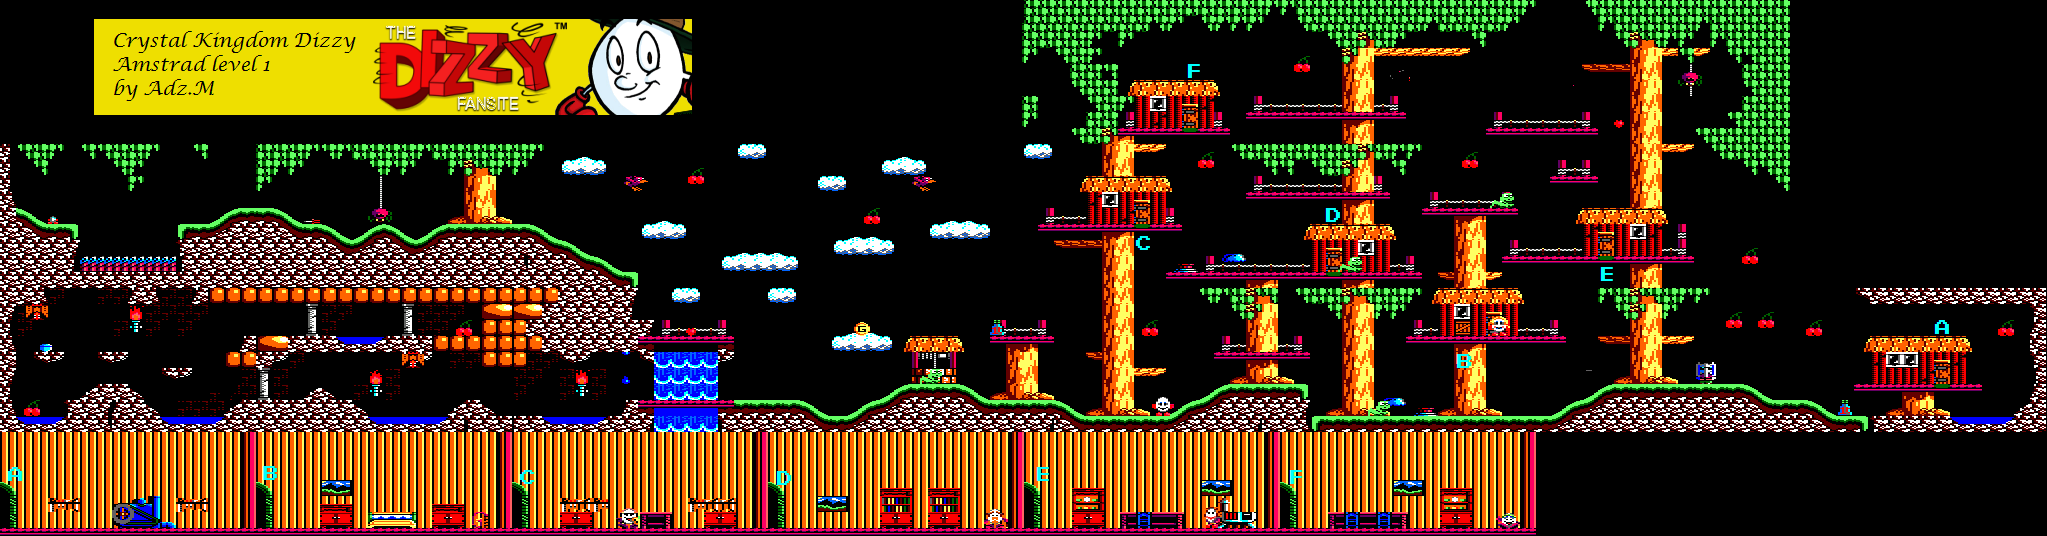 Level 1 Game map (Amstrad)